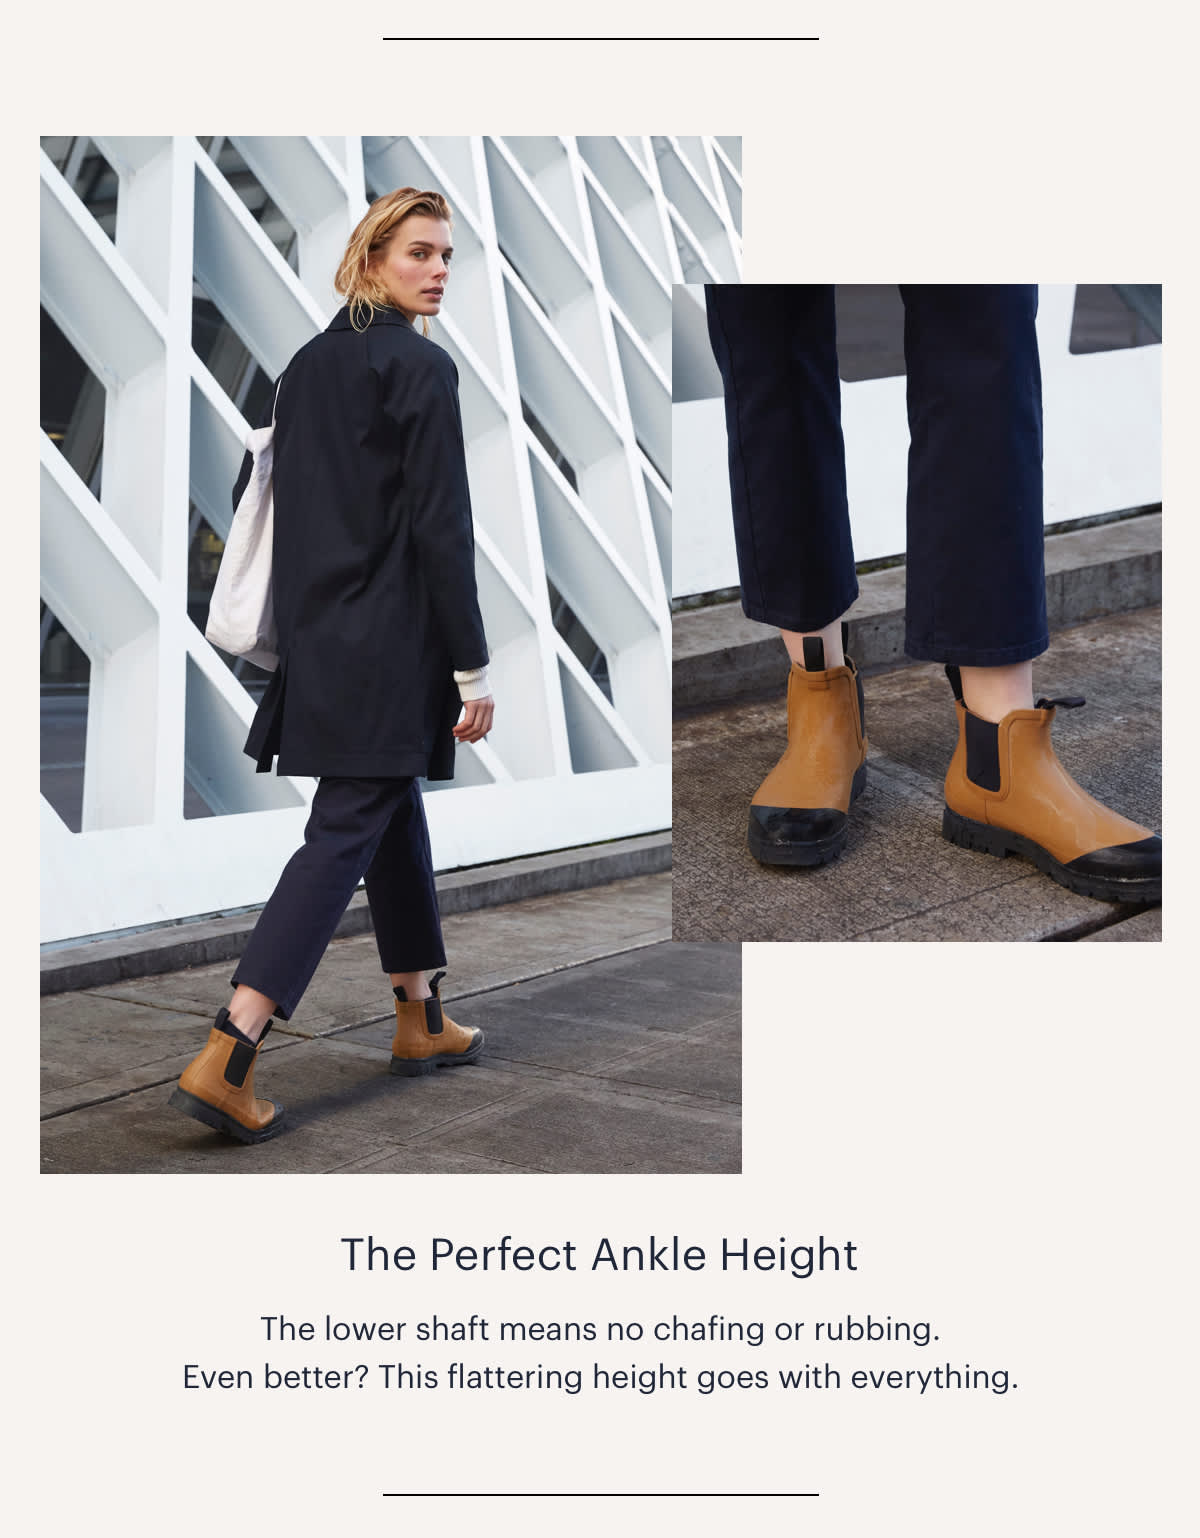 The Perfect Ankle Height